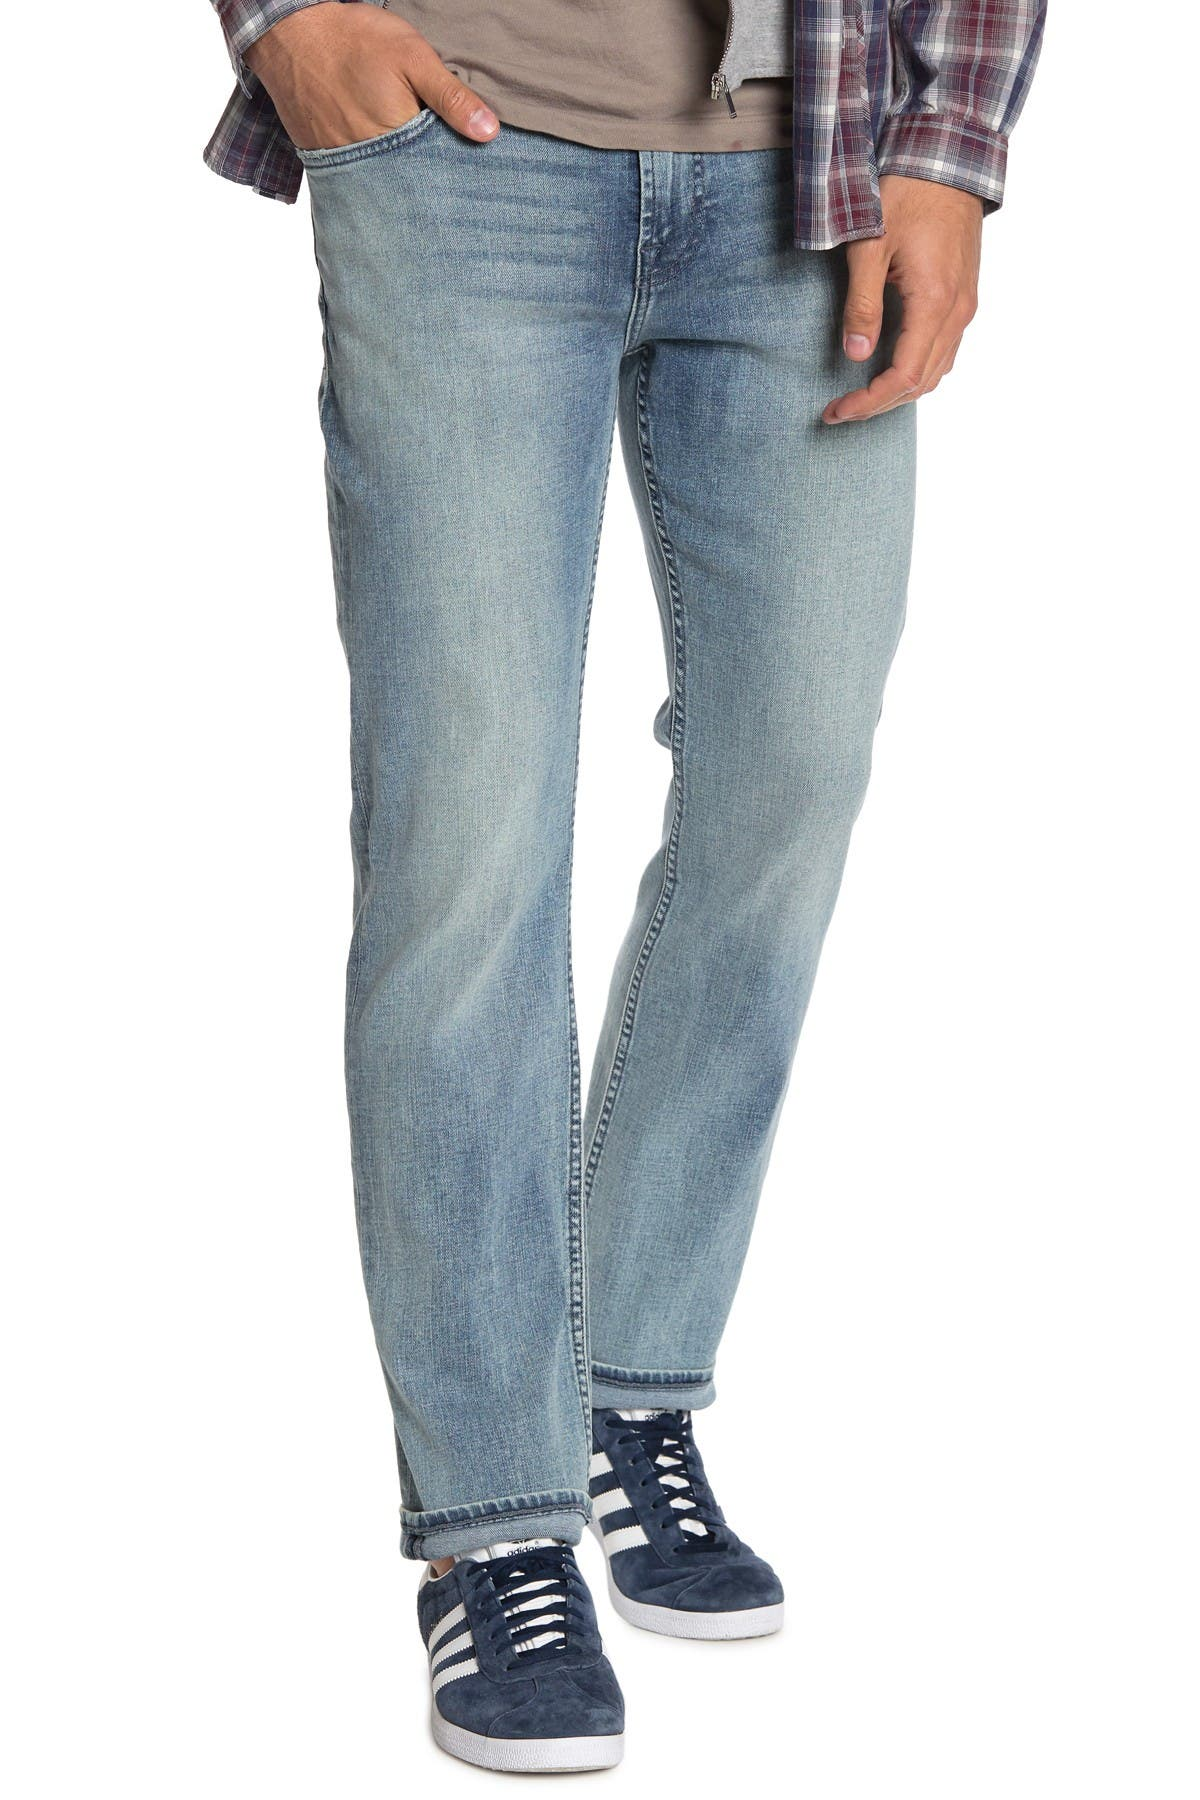 Image of 7 For All Mankind Slimmy Slim Jeans